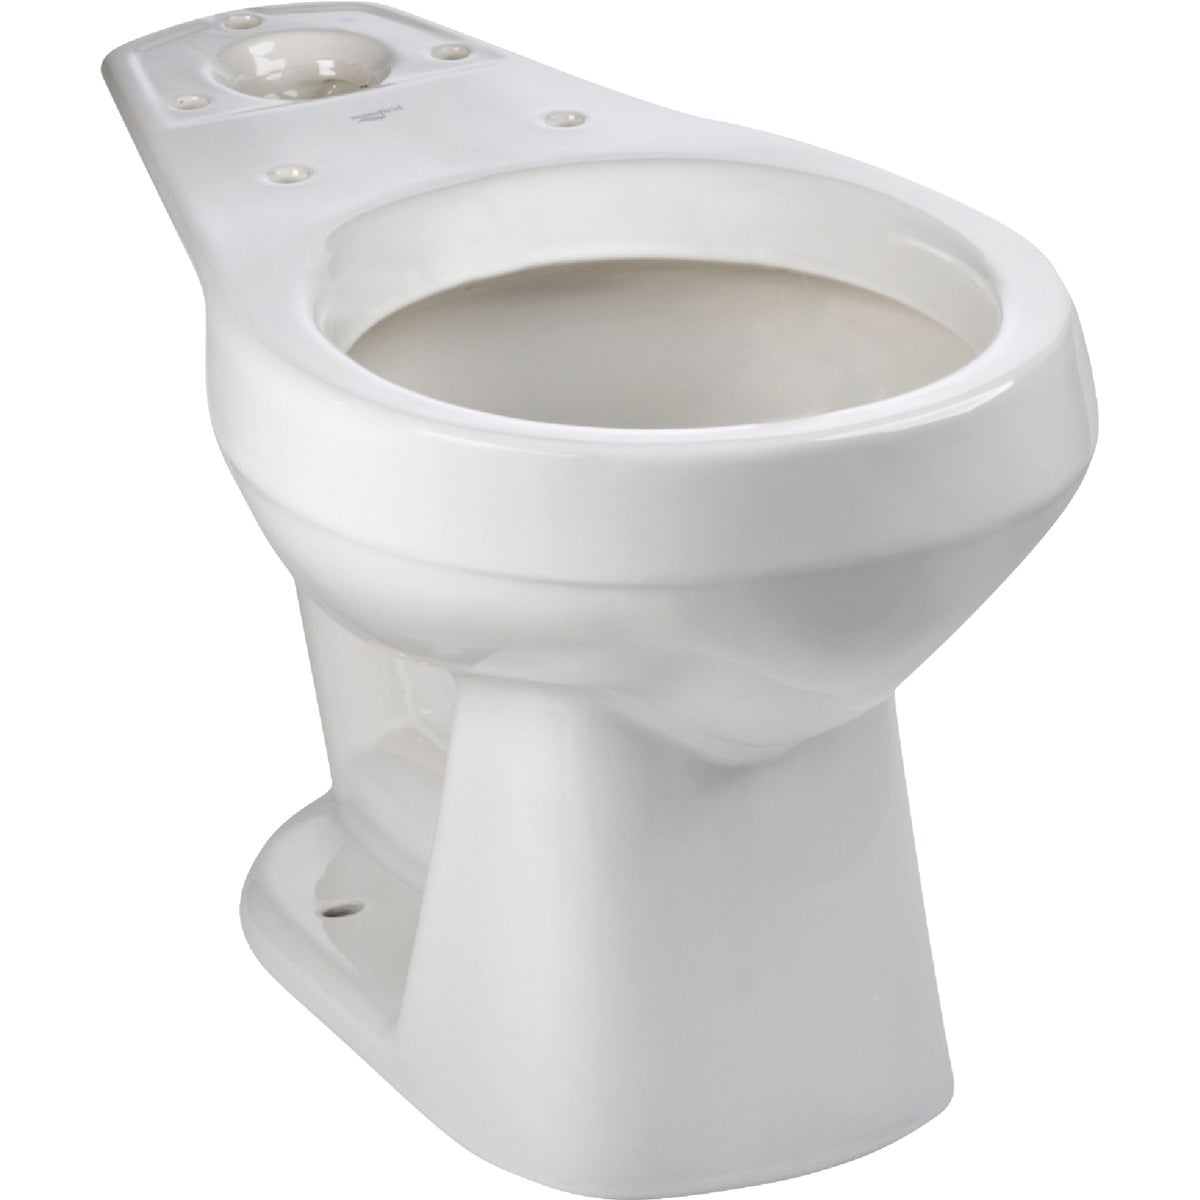 WHITE RF TOILET BOWL